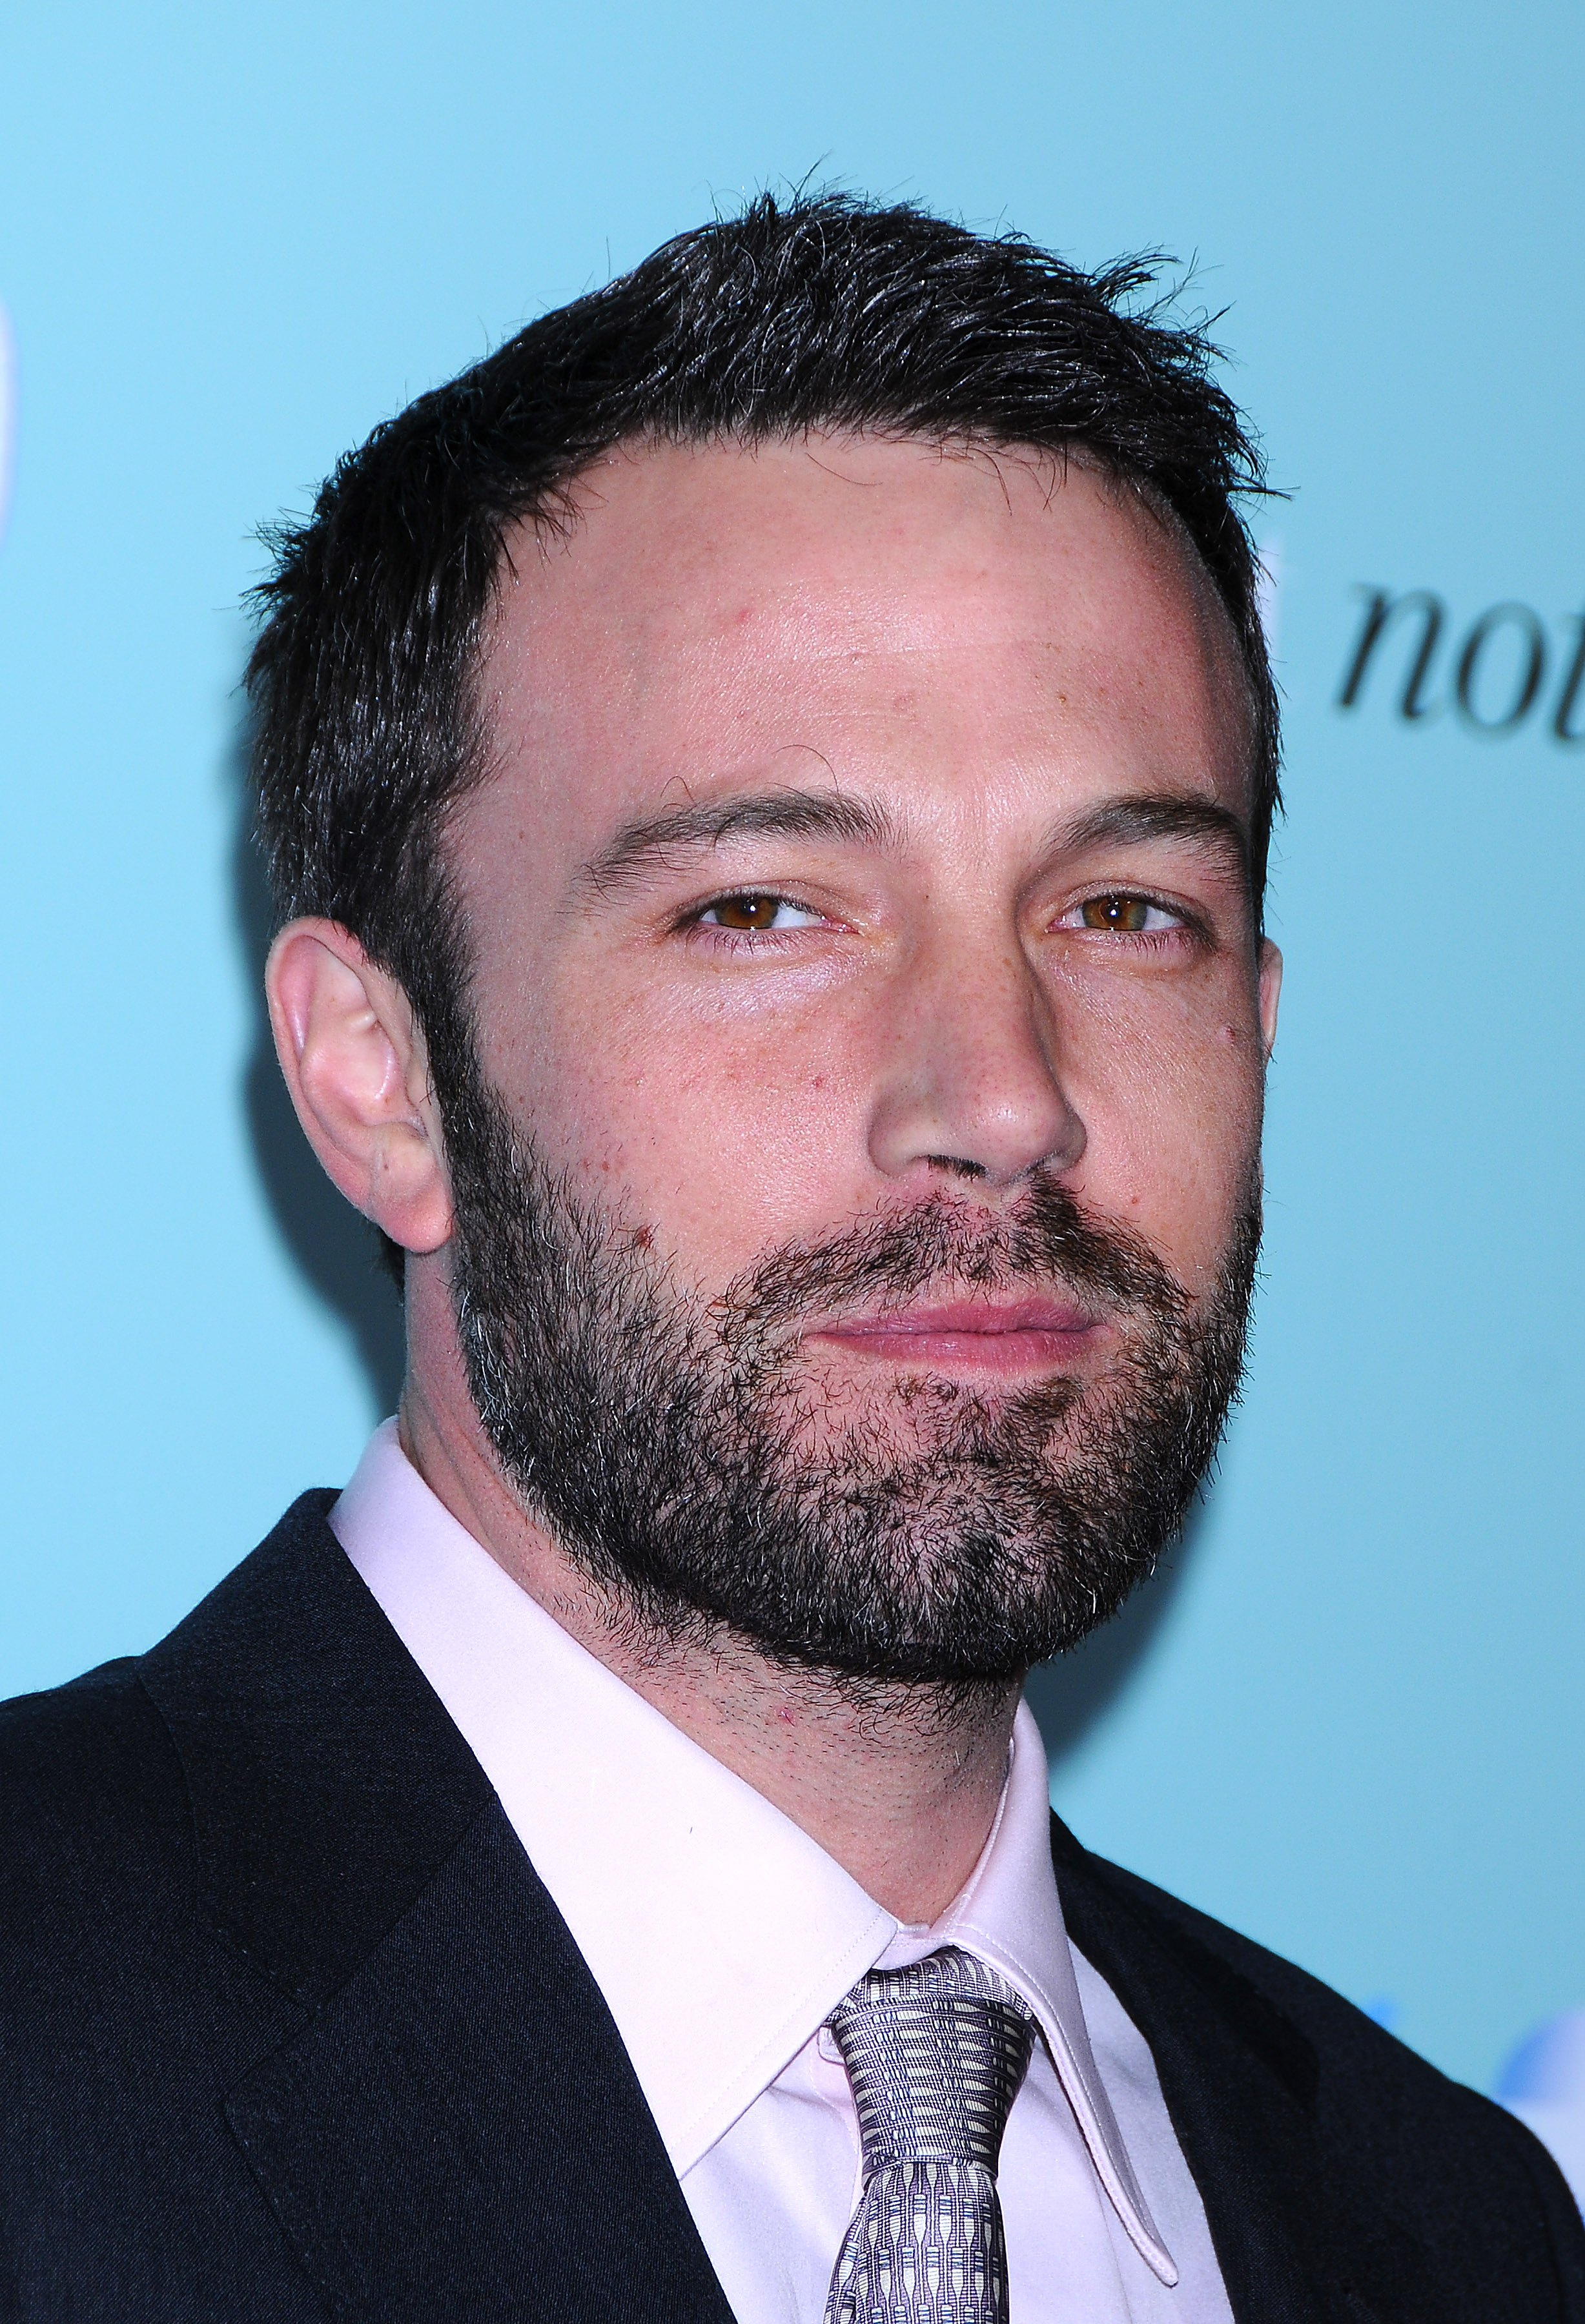 39575_Ben_Affleck_-_Premiere_of_43He72s_just_not_that_into_you71_CU_ISA_01_122_481lo.jpg